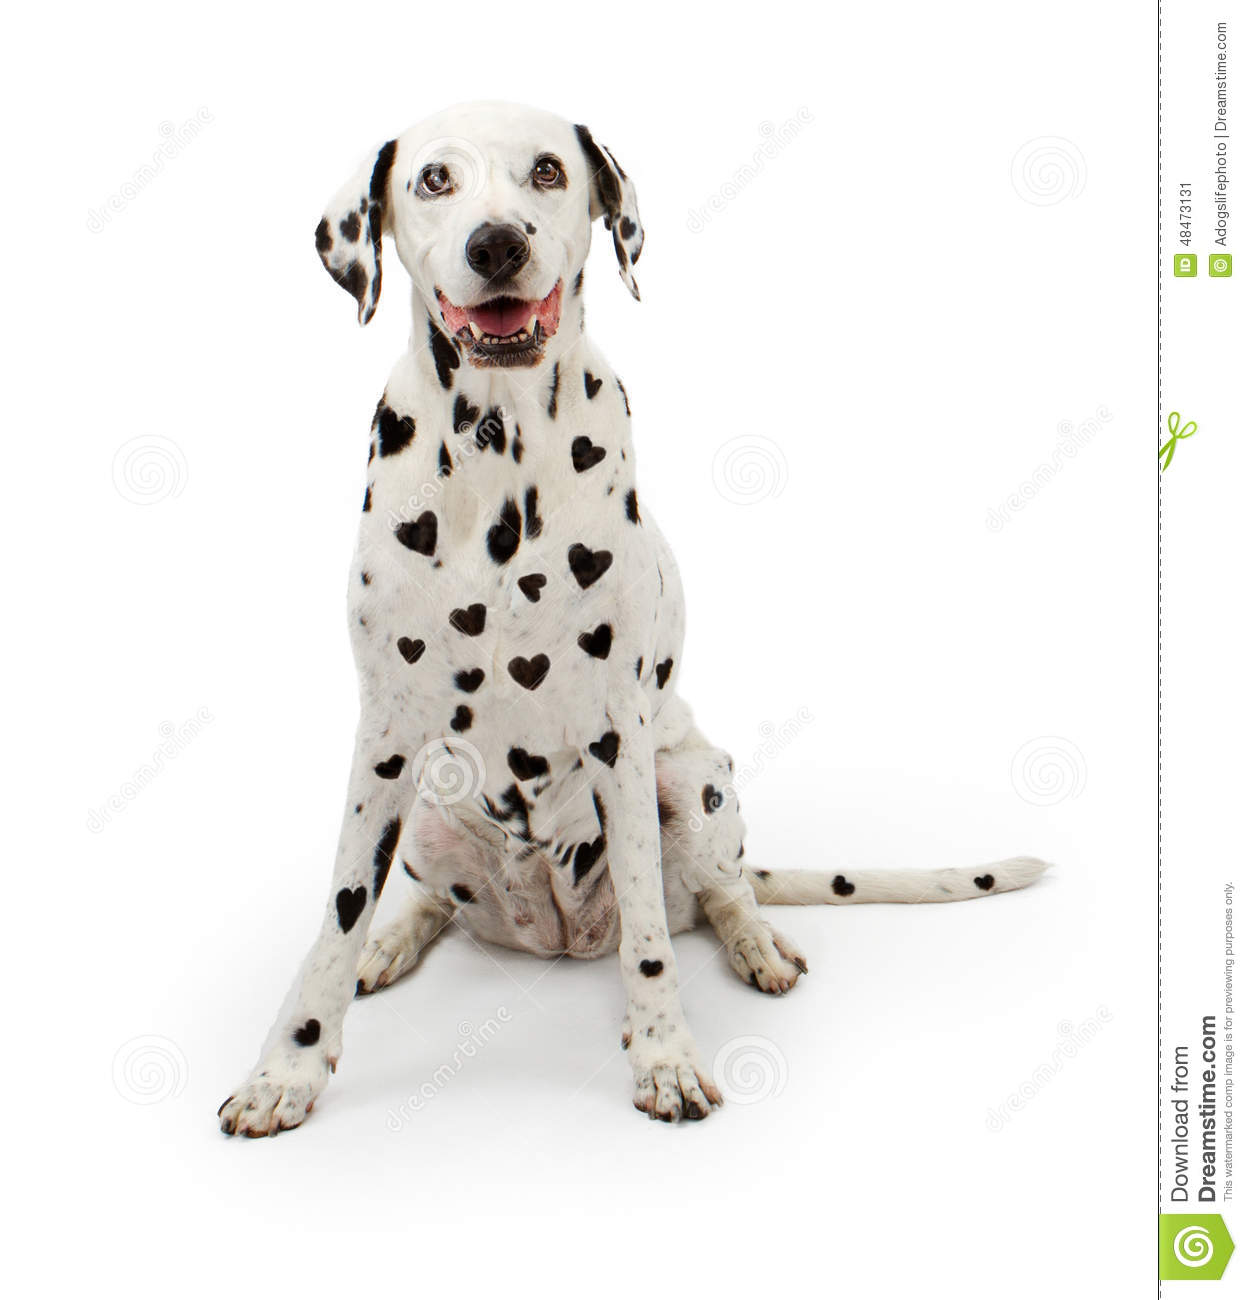 Dalmatian dog with heart-shaped black spots on its fur sitting on a ...